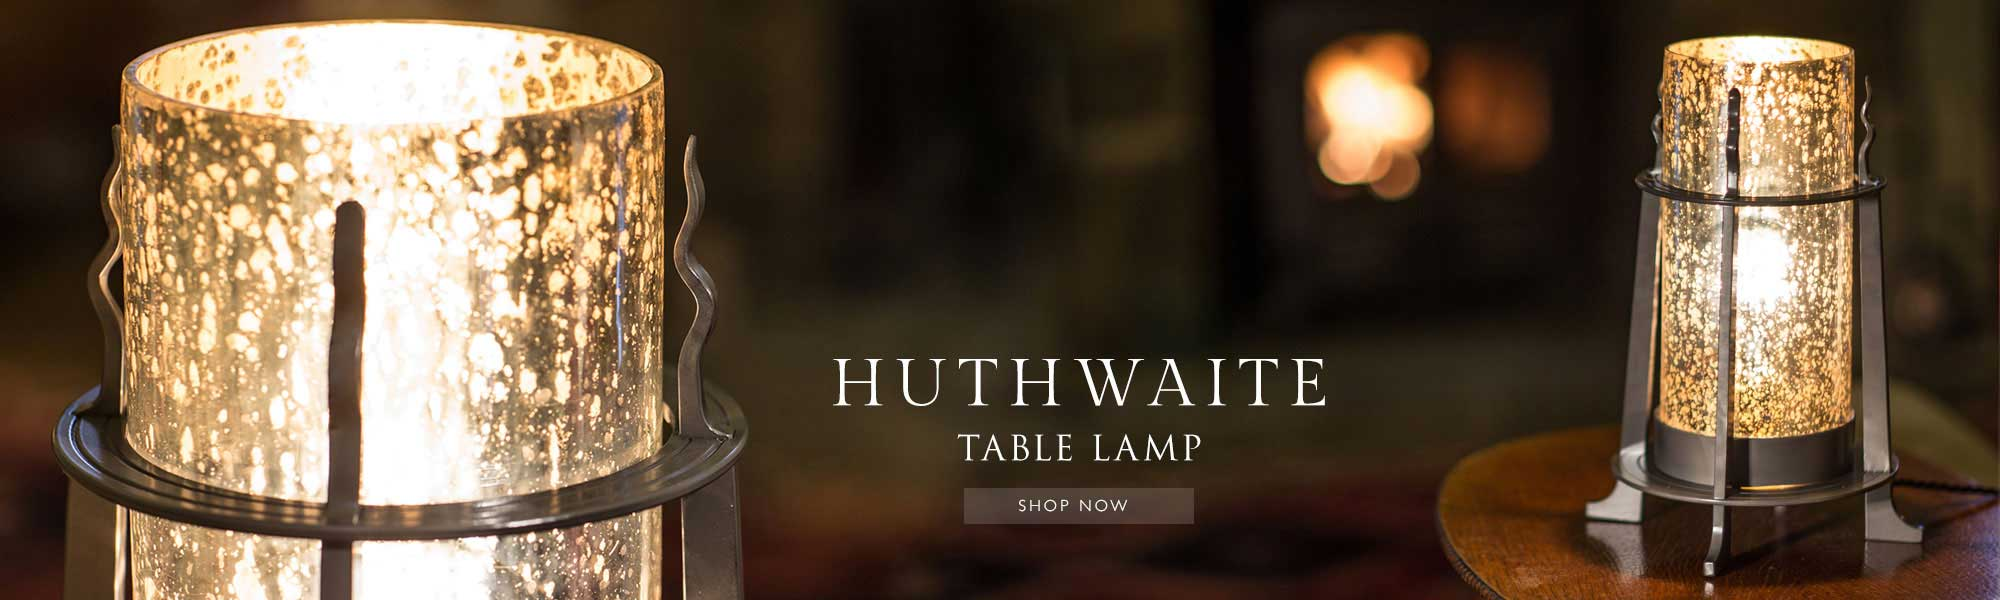 Huthwaite table lamp Pendant Light from Nigel Tyas Ironwork